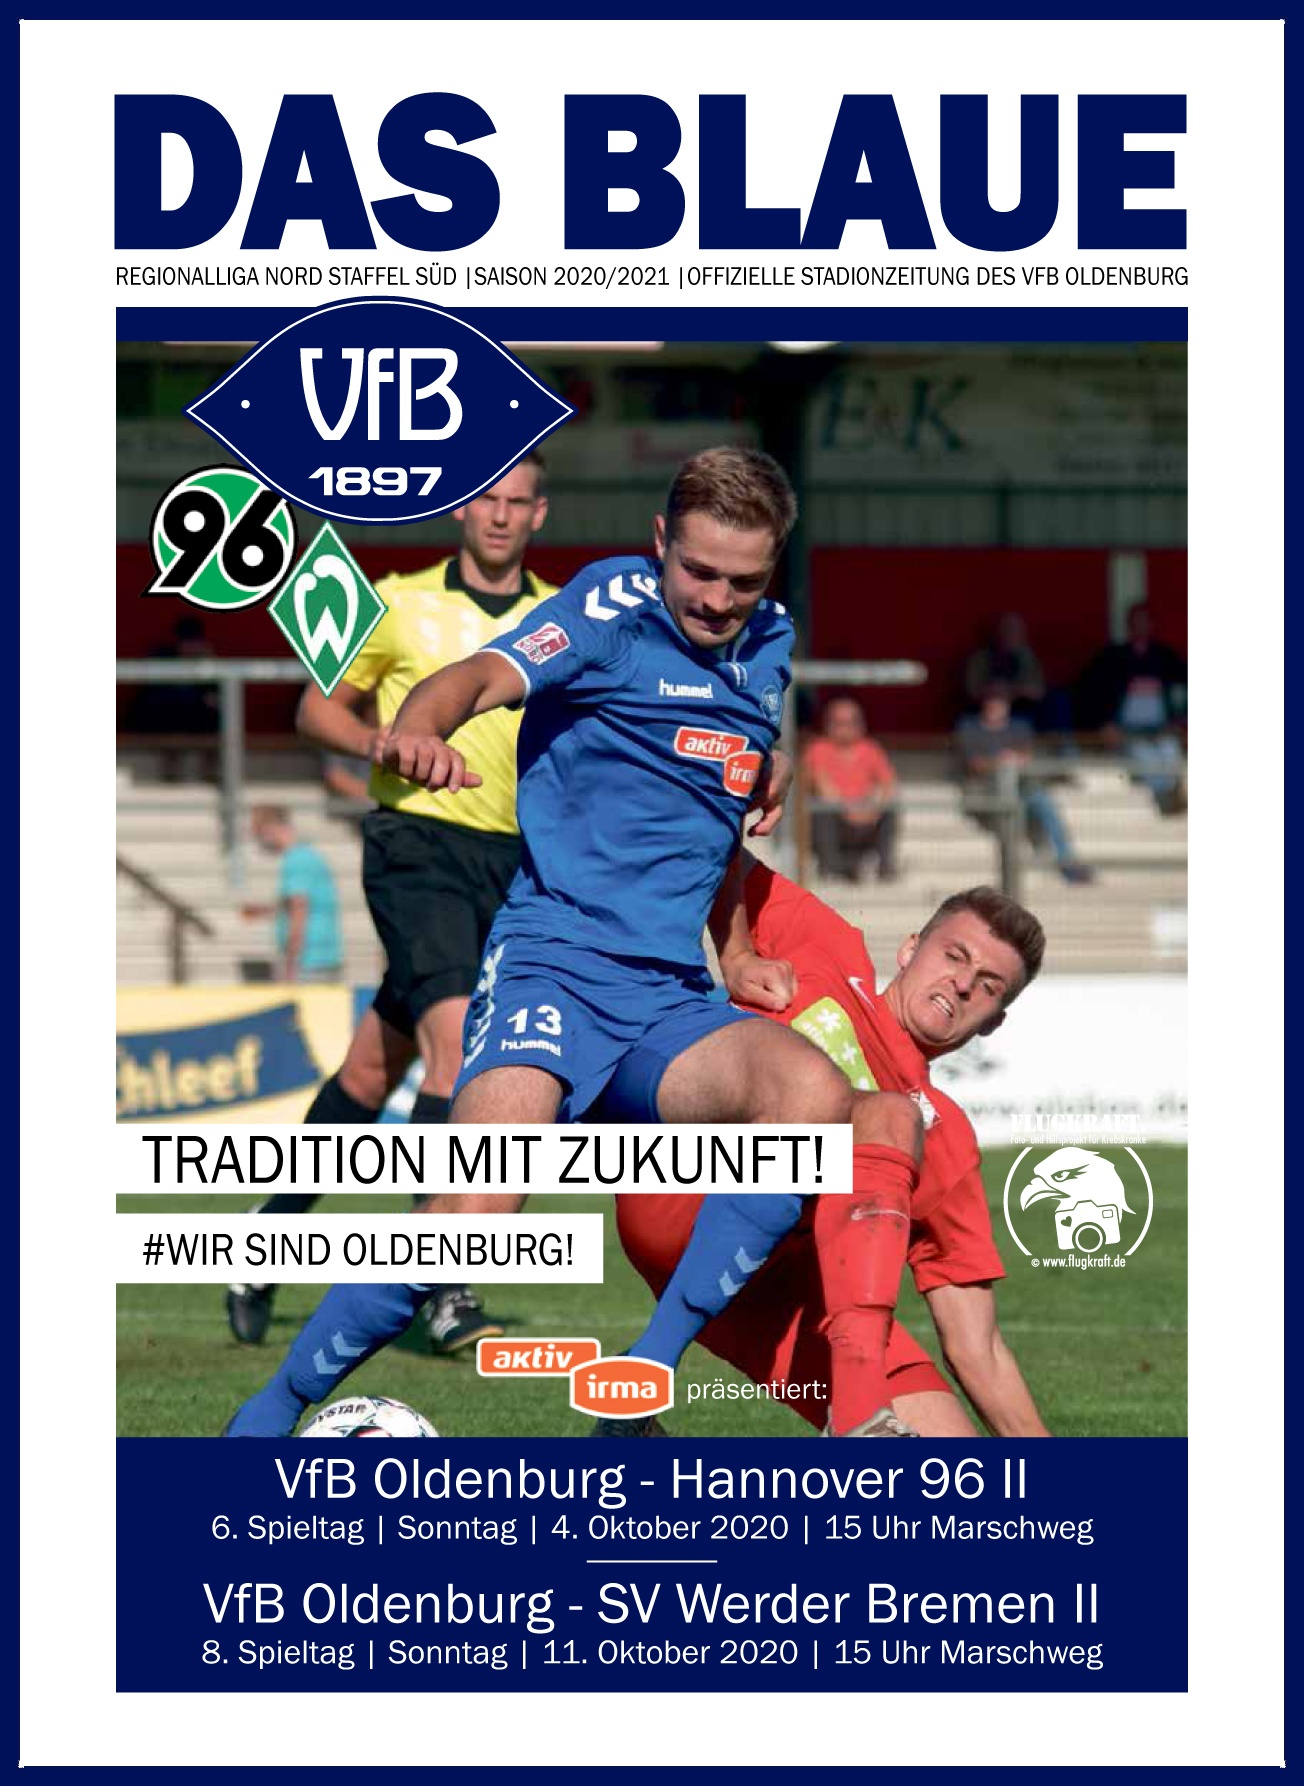 https://vfb-oldenburg.de/wp-content/uploads/2020/09/VFB_Oldenburg_6_Spieltag_2020_2021-1.jpg